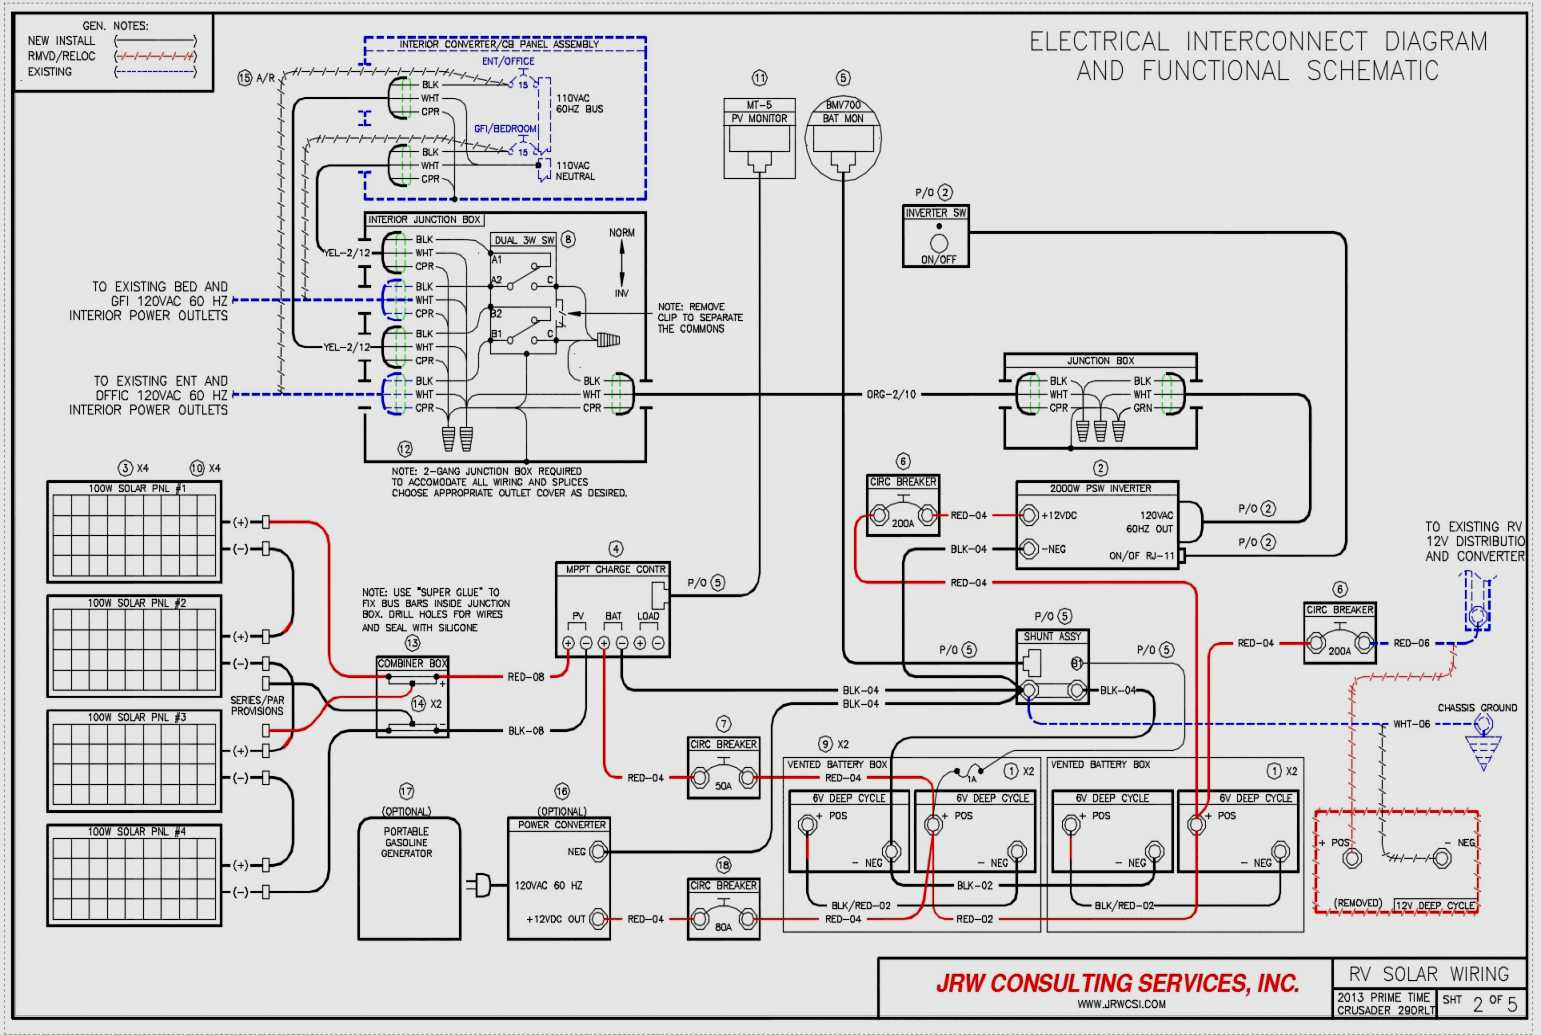 Camper Trailer Wiring Diagram | Wiring Diagram - Camper Trailer Wiring Diagram